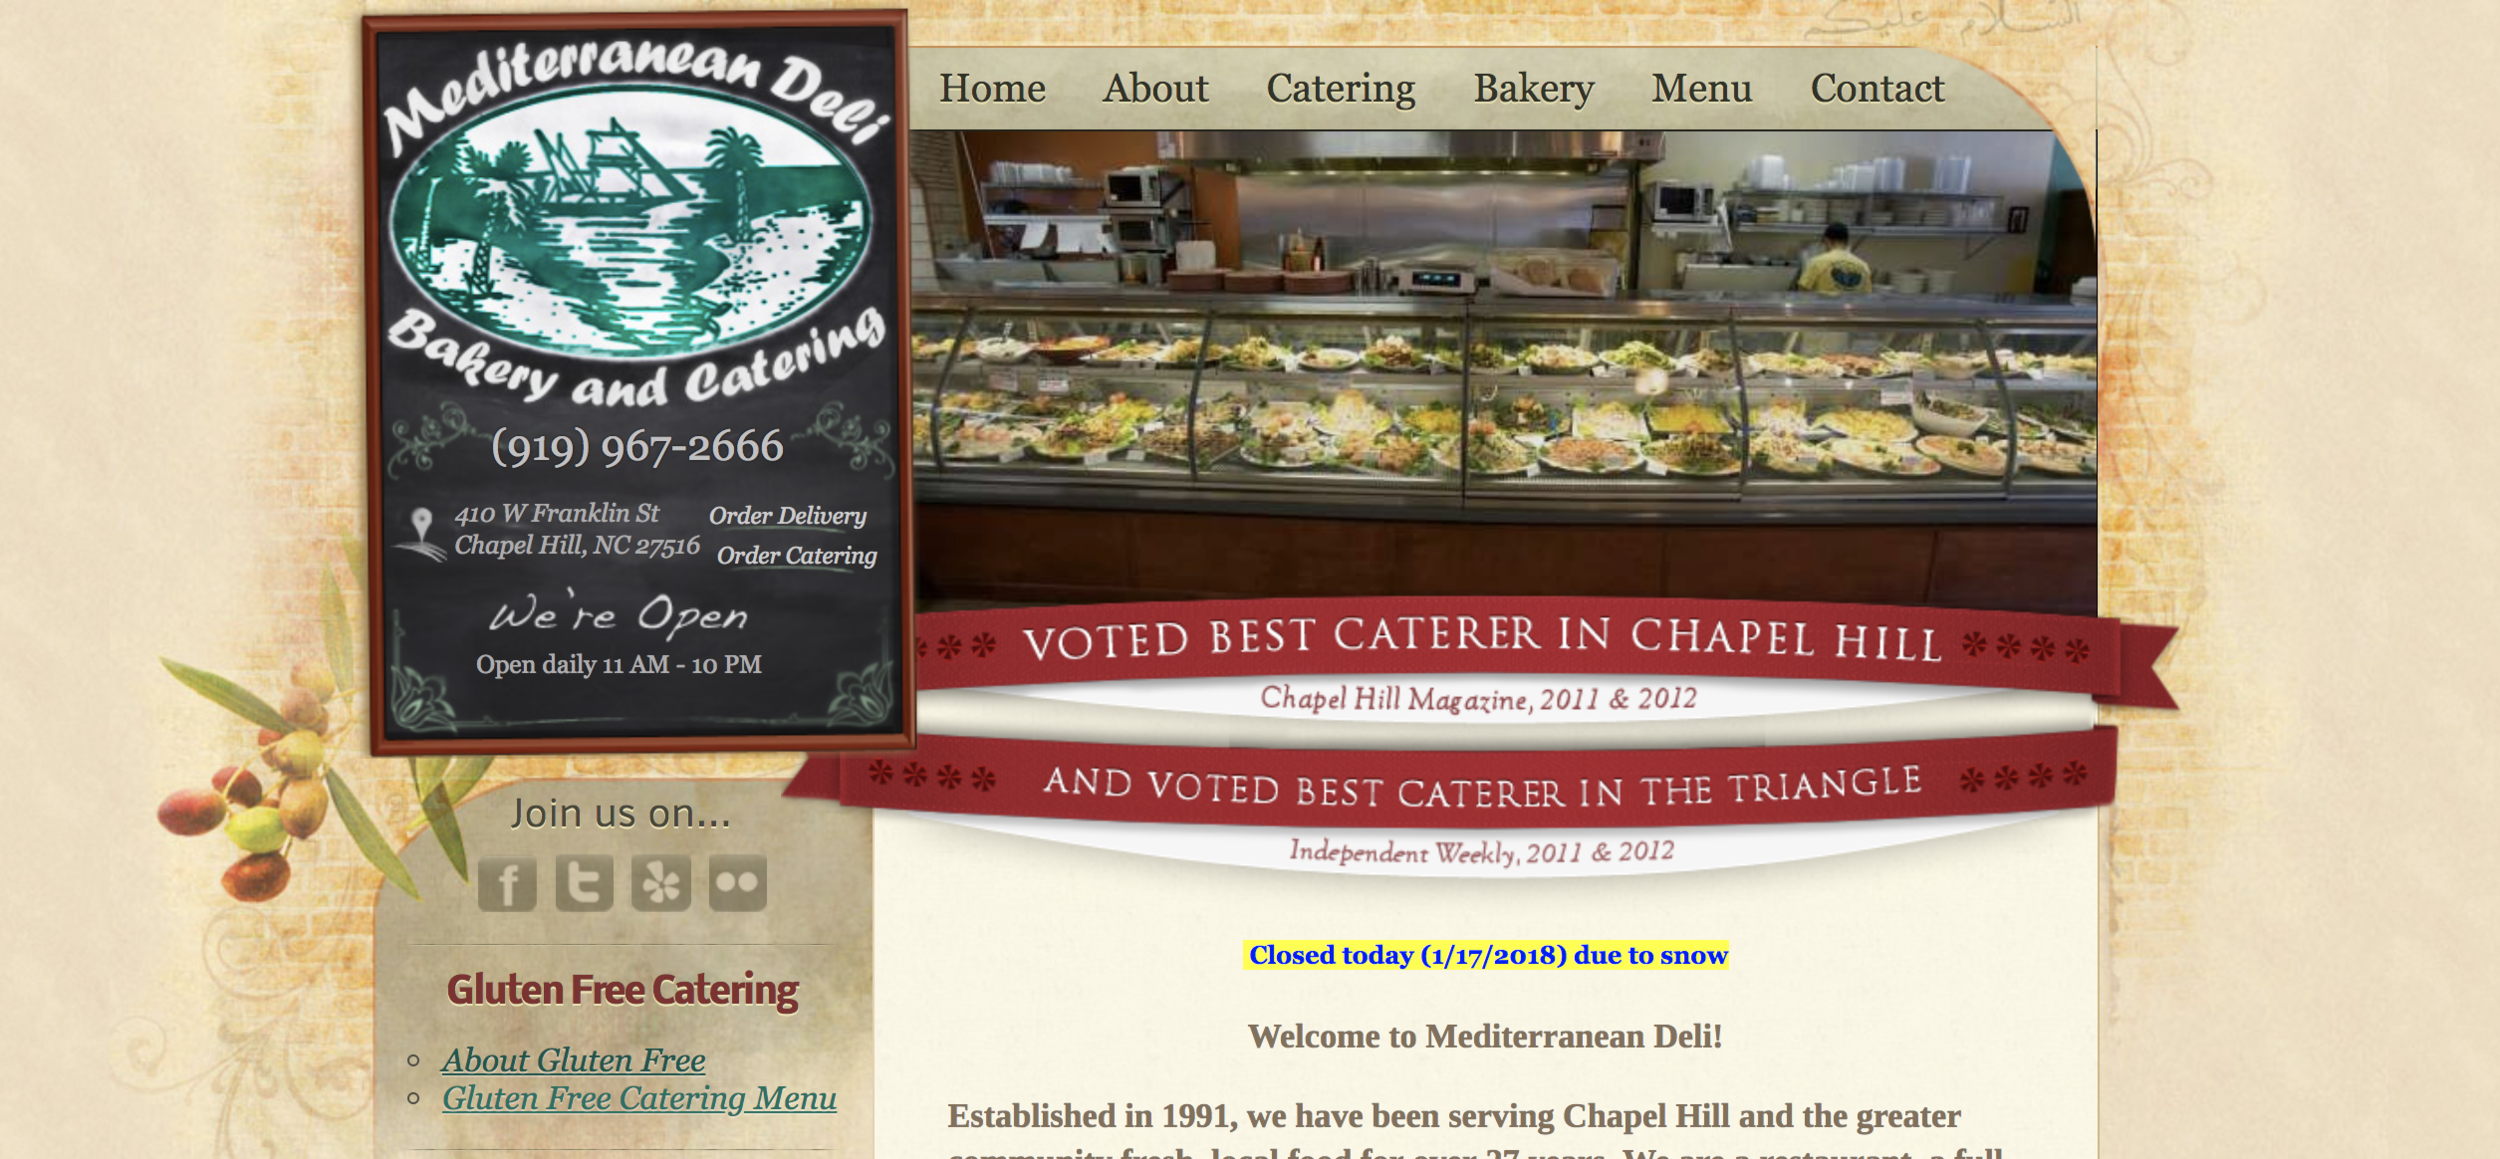 Our old website, launched in 2010